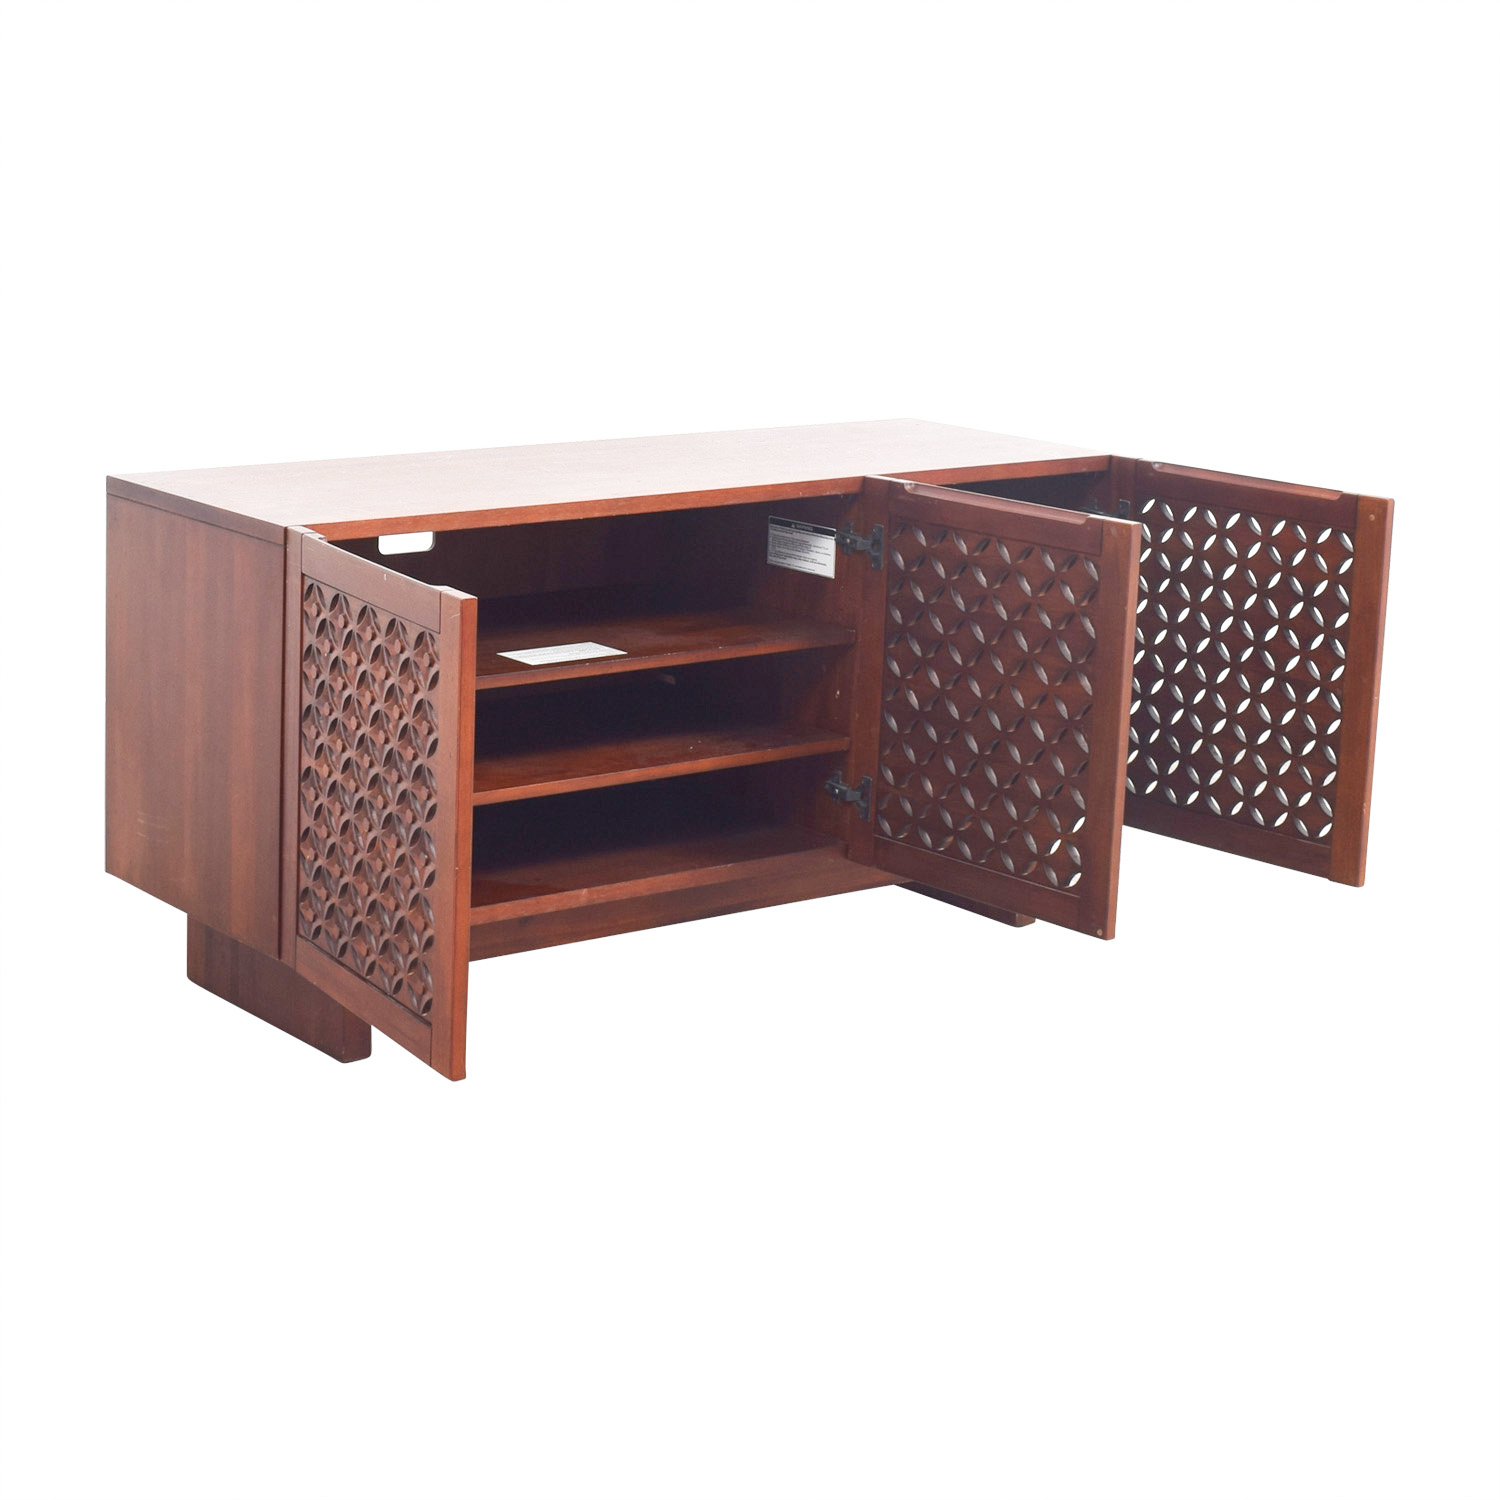 West Elm West Elm Carved Wood Media Console on sale